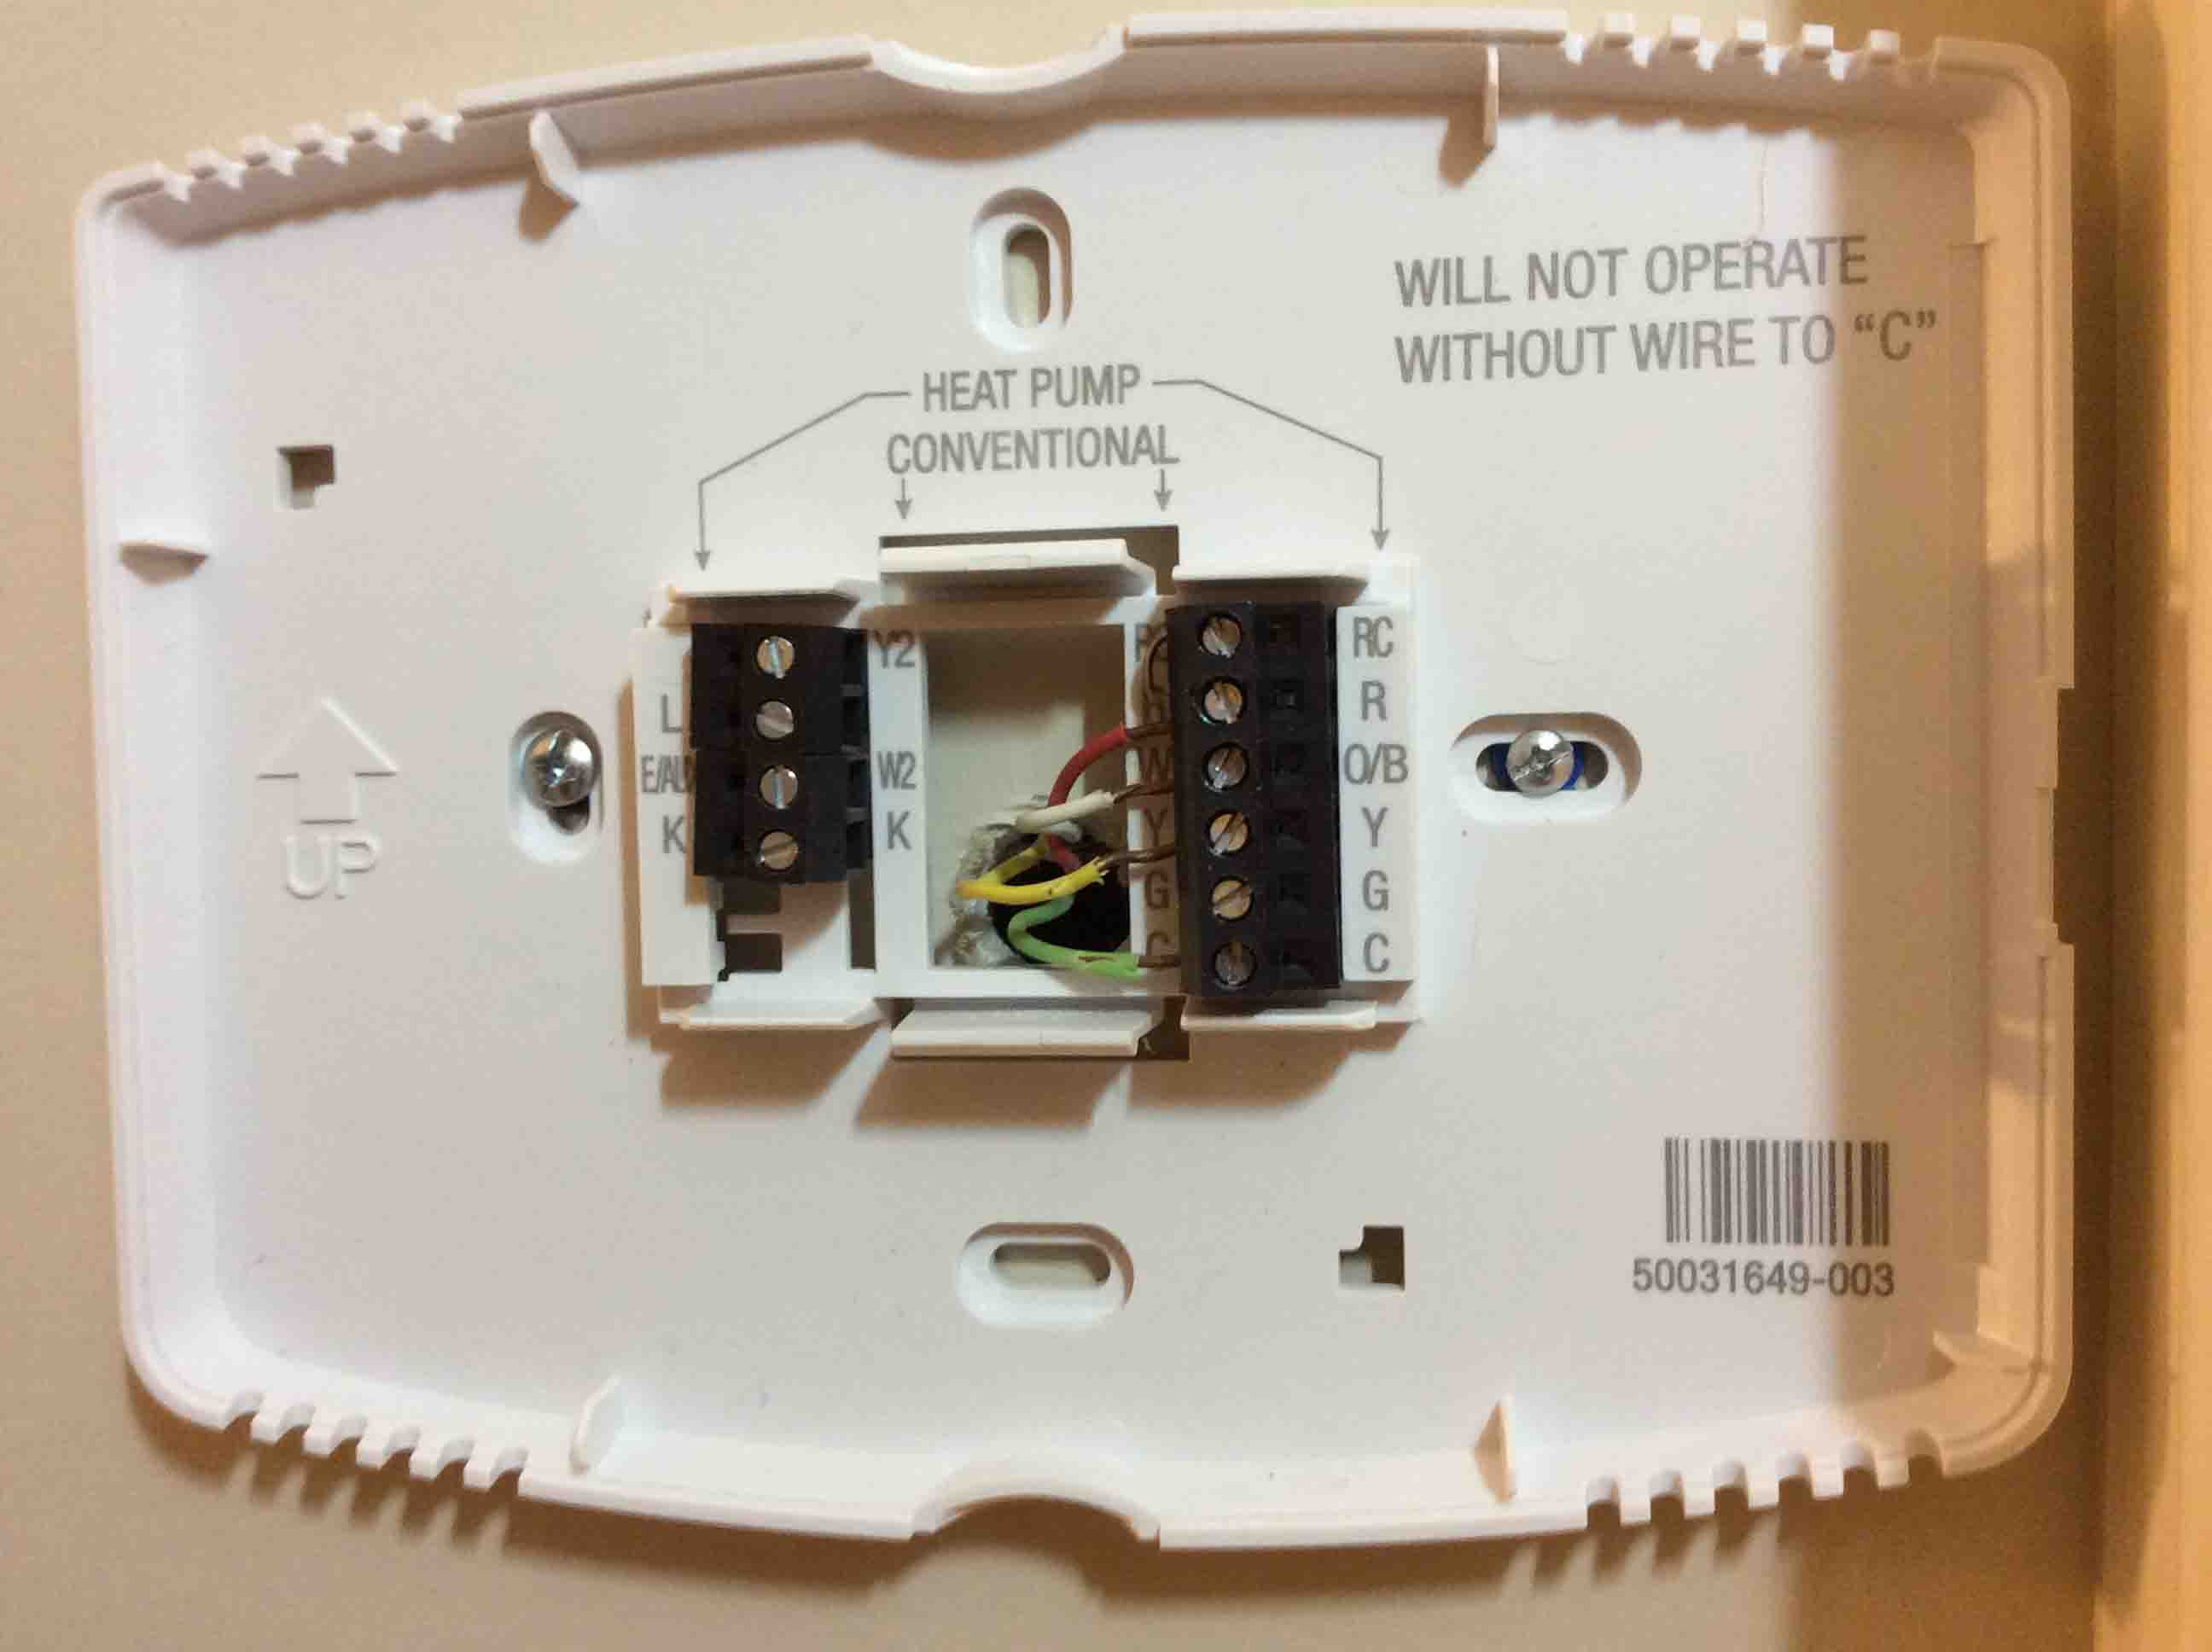 how to wire a honeywell thermostat with 4 wires tom's tek stop honeywell thermostat wiring diagram how to wire a honeywell thermostat with 4 wires picture of a honeywell wifi thermostat